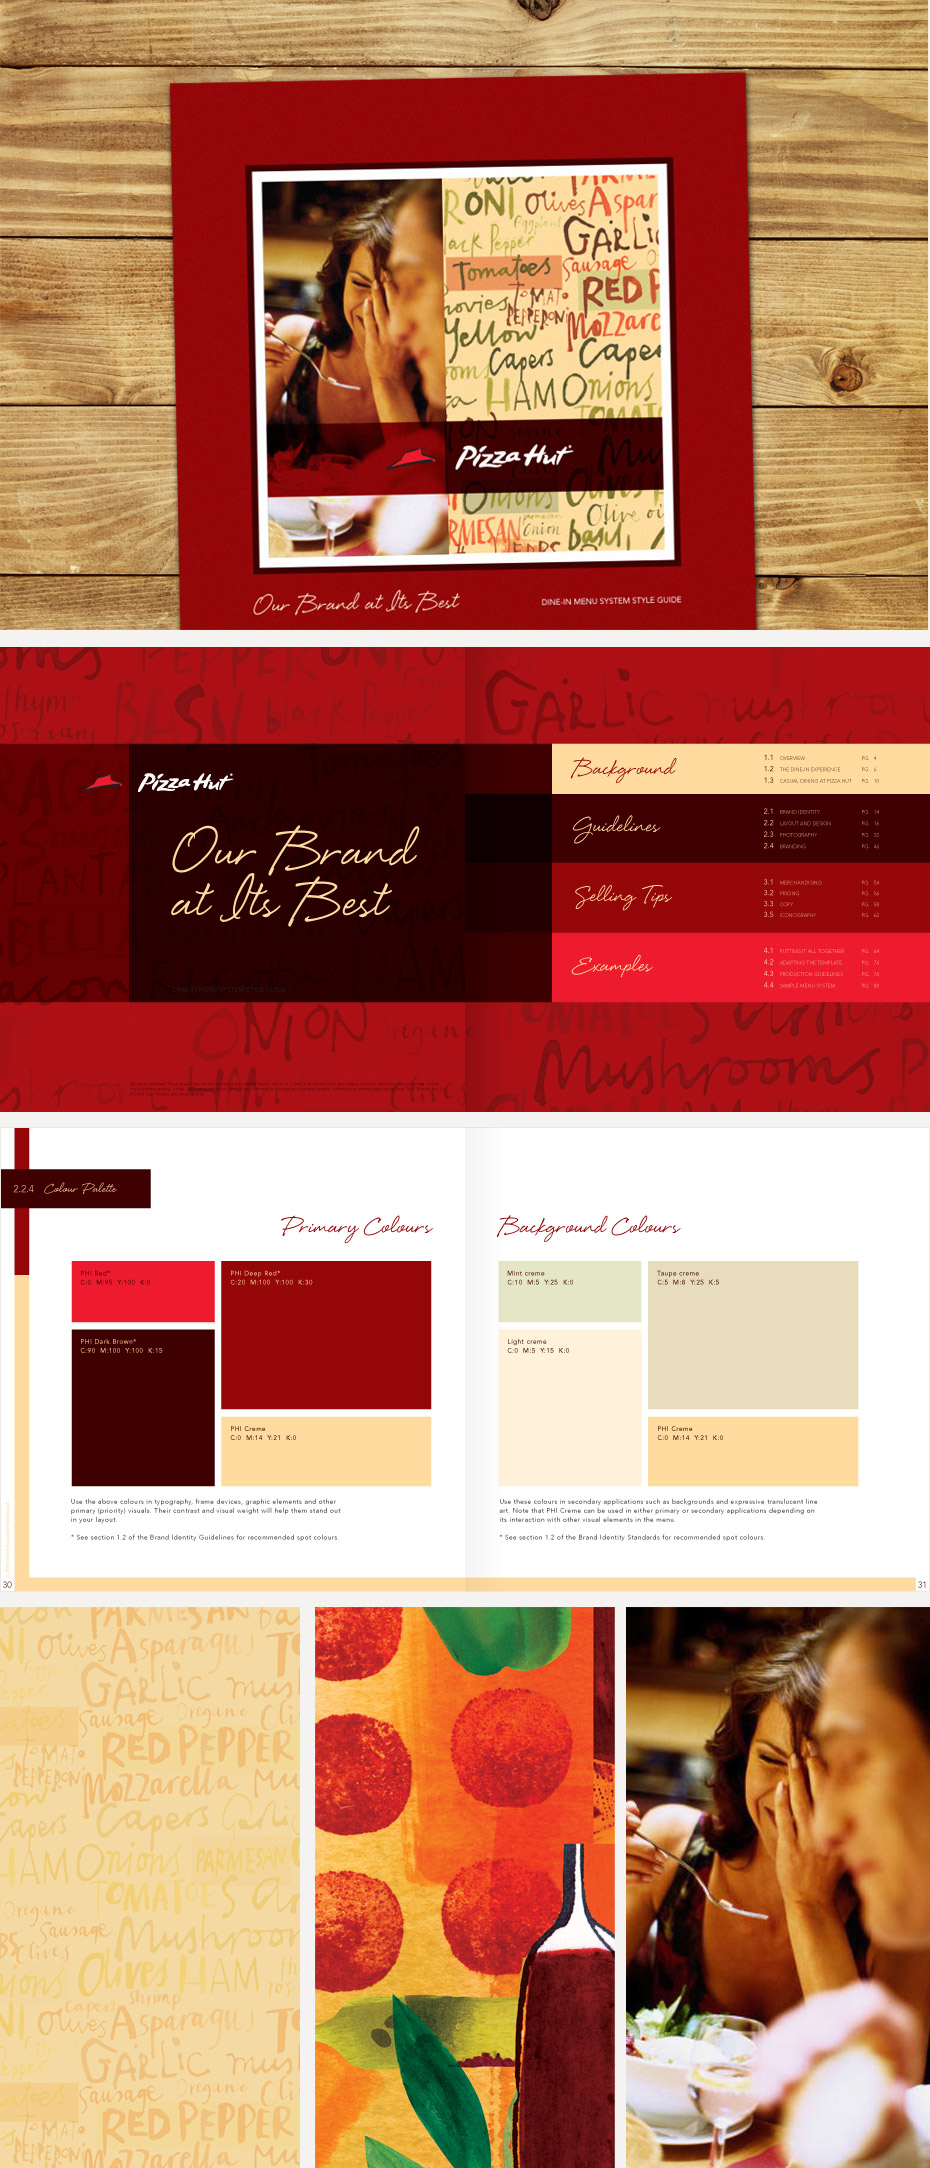 Pizza Hut Menu Style Guide Cover, Color Palette & Imagery